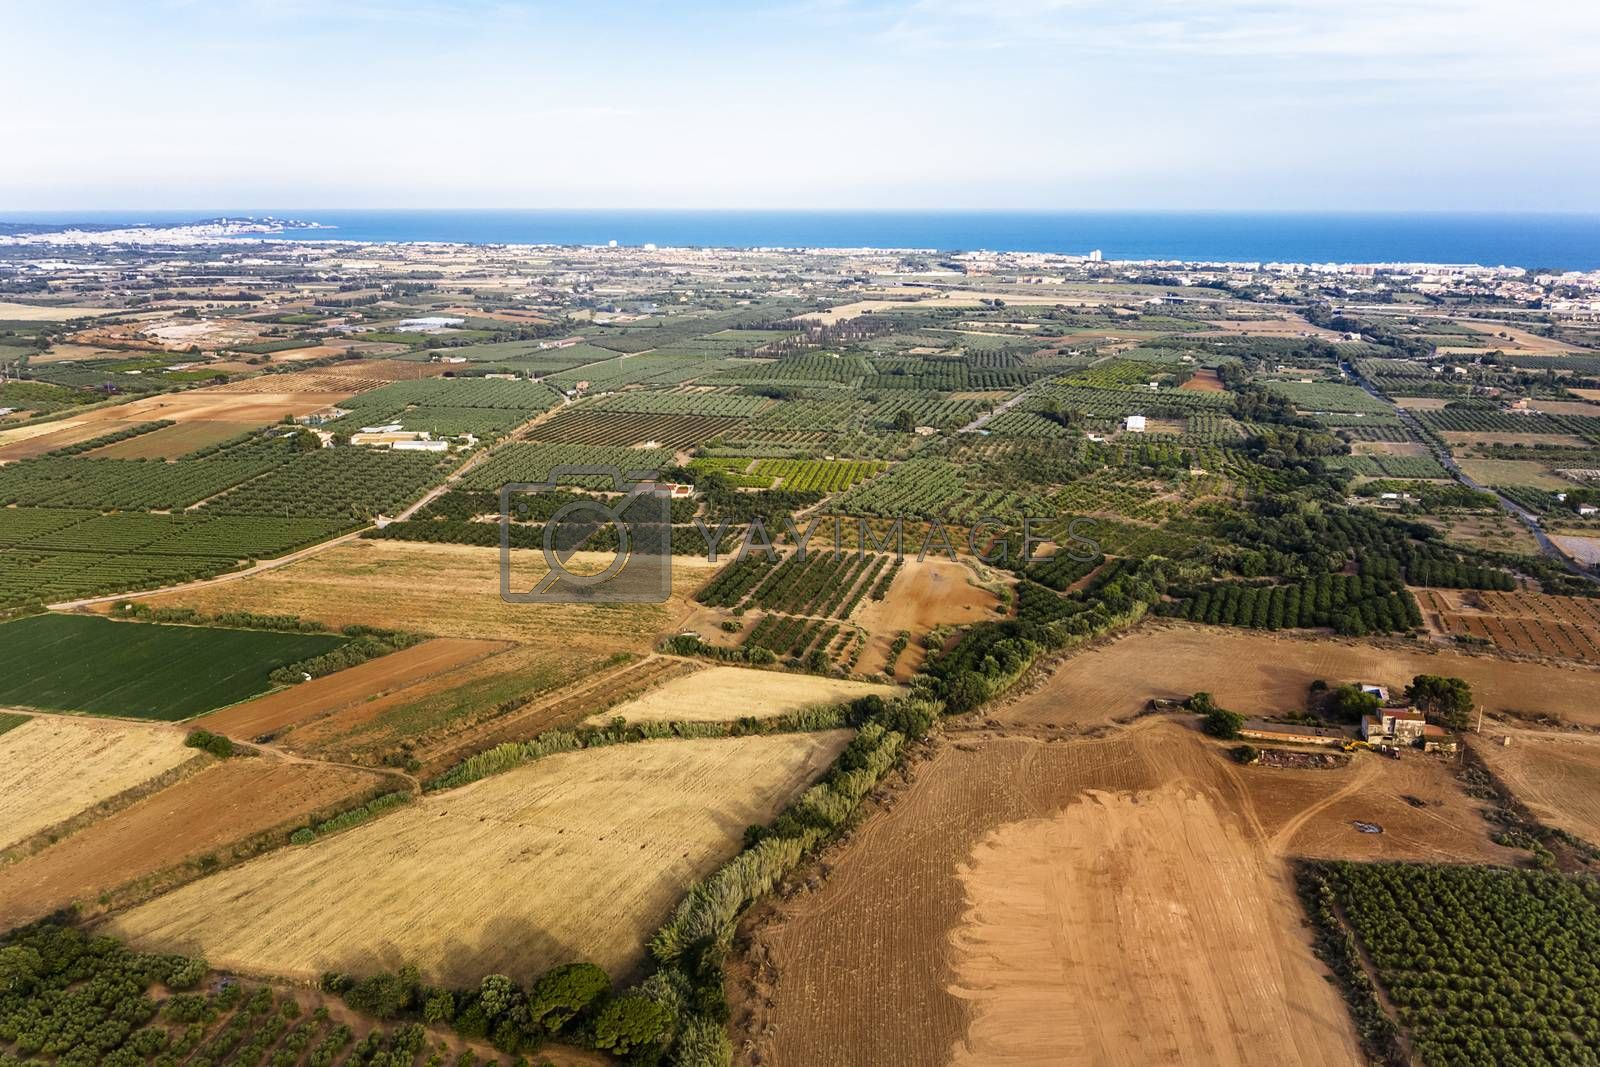 top view of crop farm fields near of Salou at the Mediterranean sea in Tarragona, background field agricultural industry aerial view